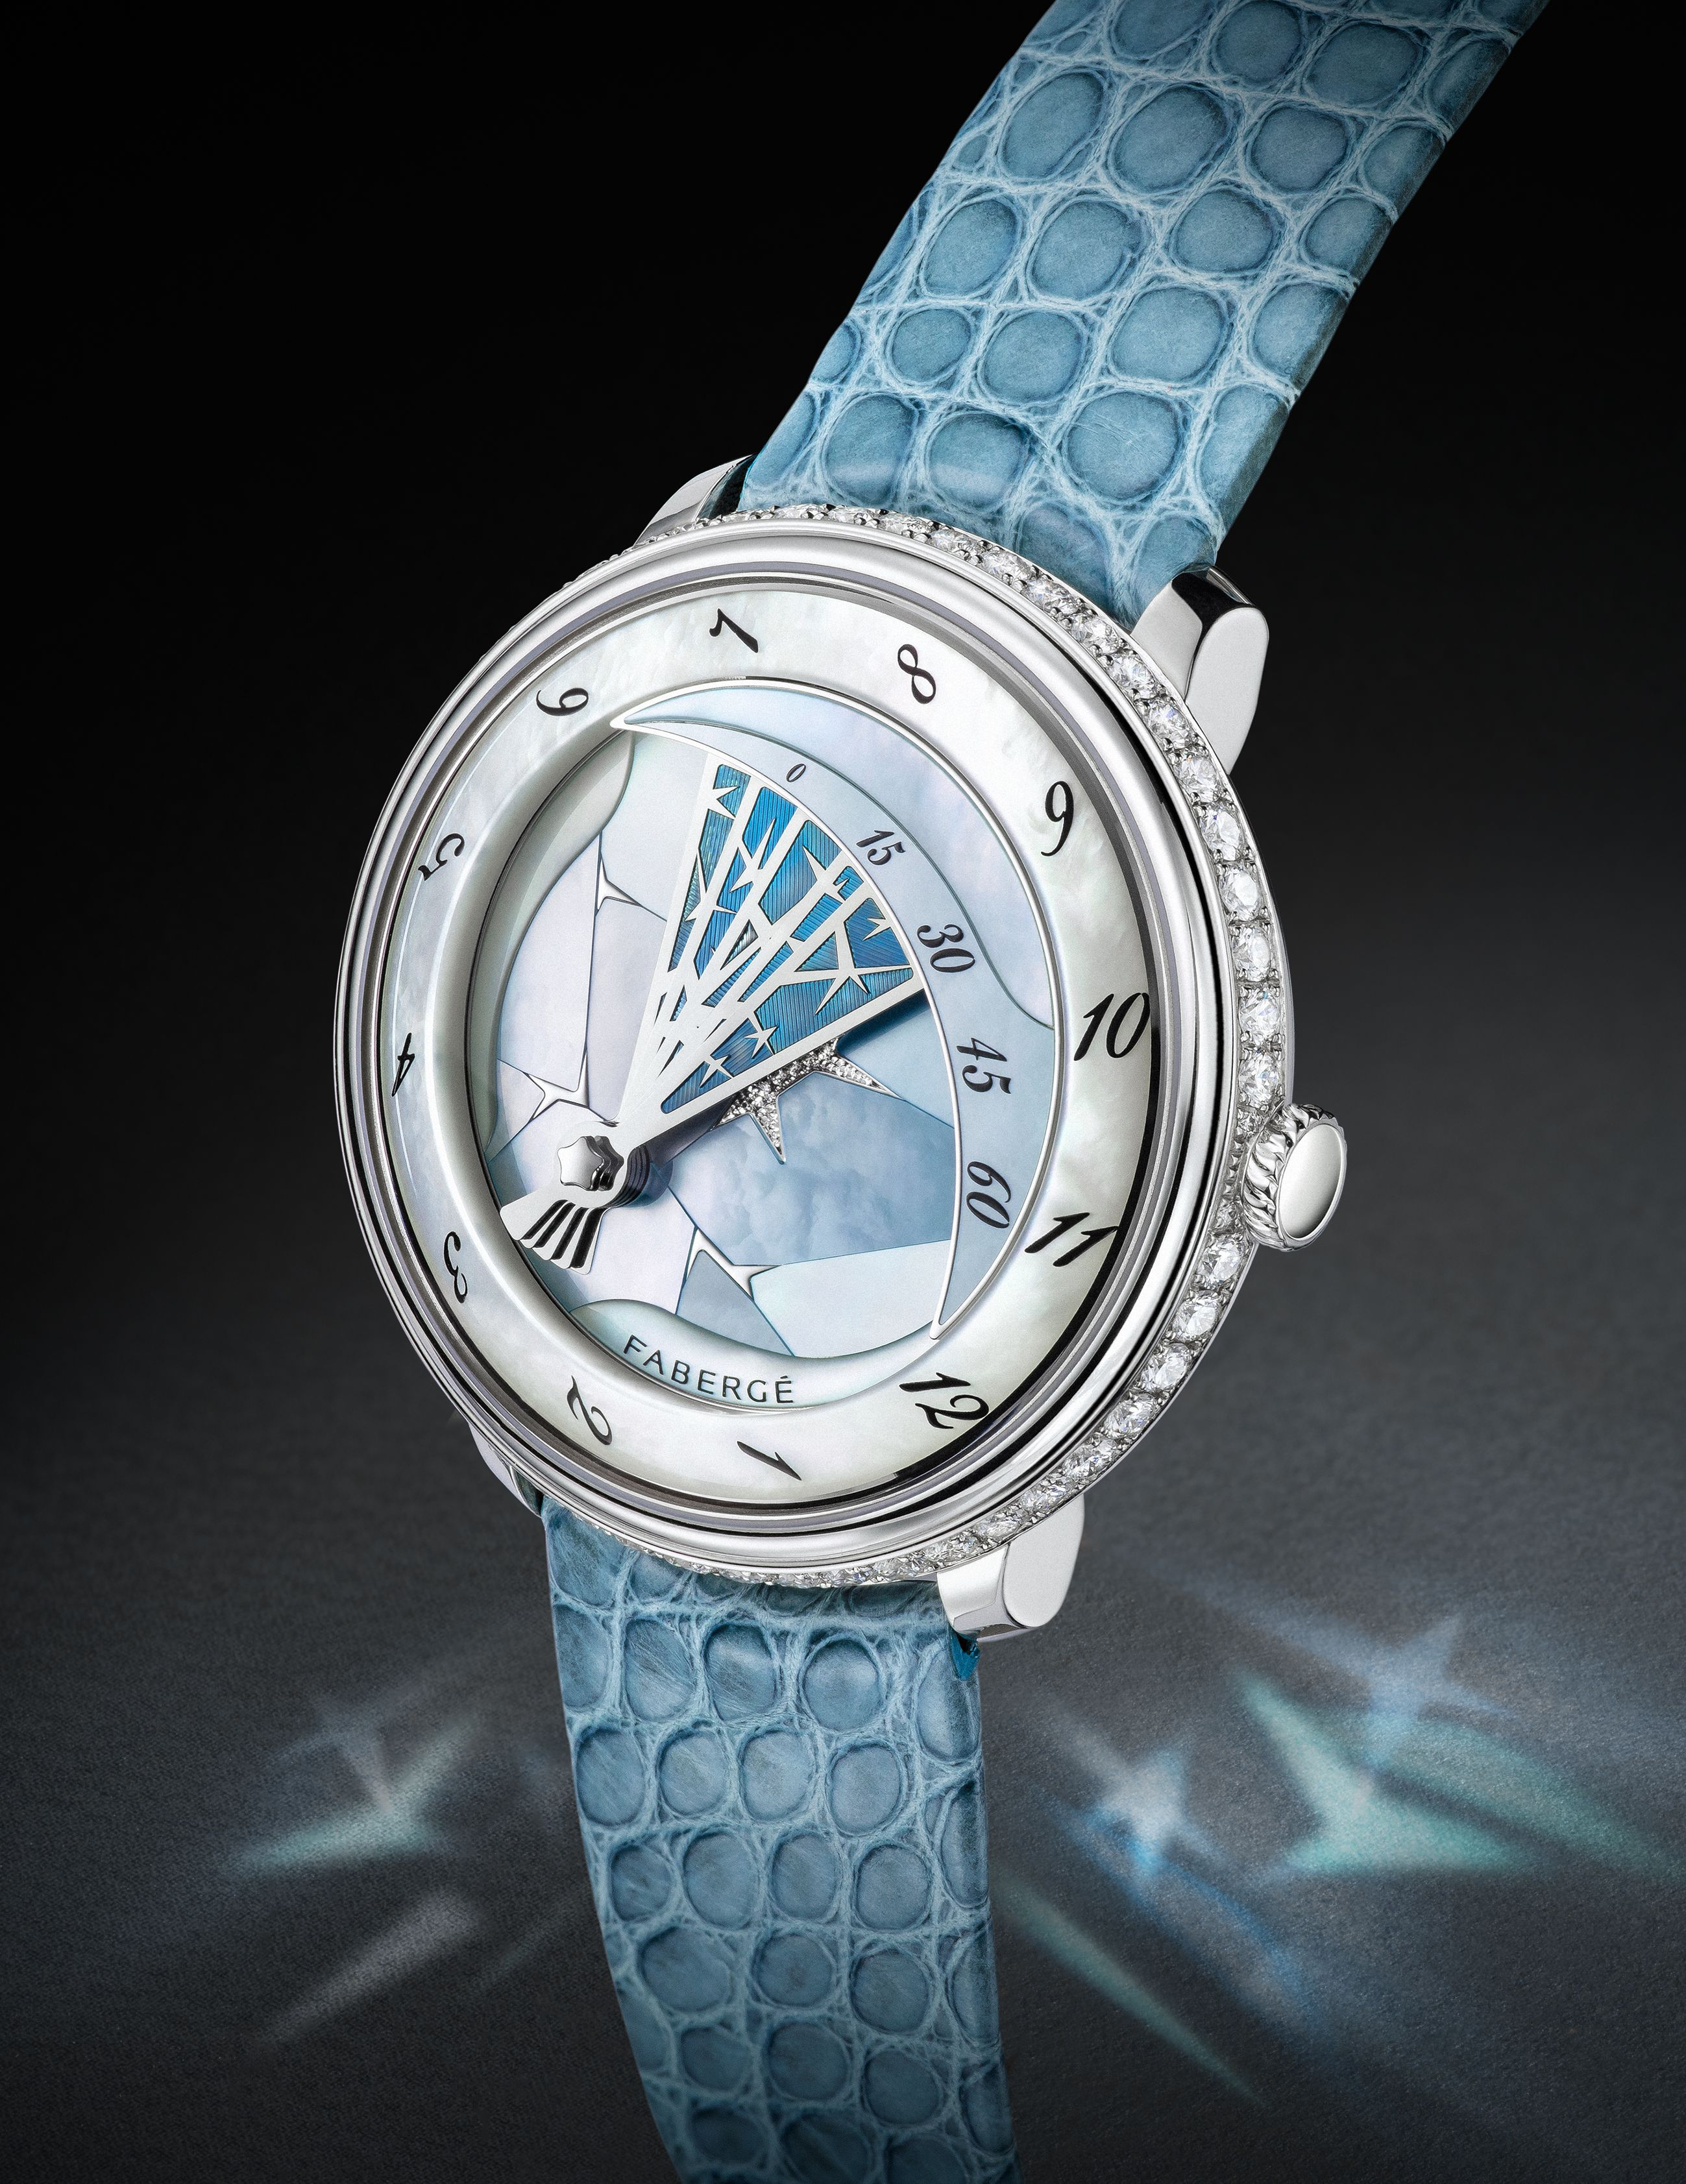 Blue strap with detailed casing and embedded with diamonds